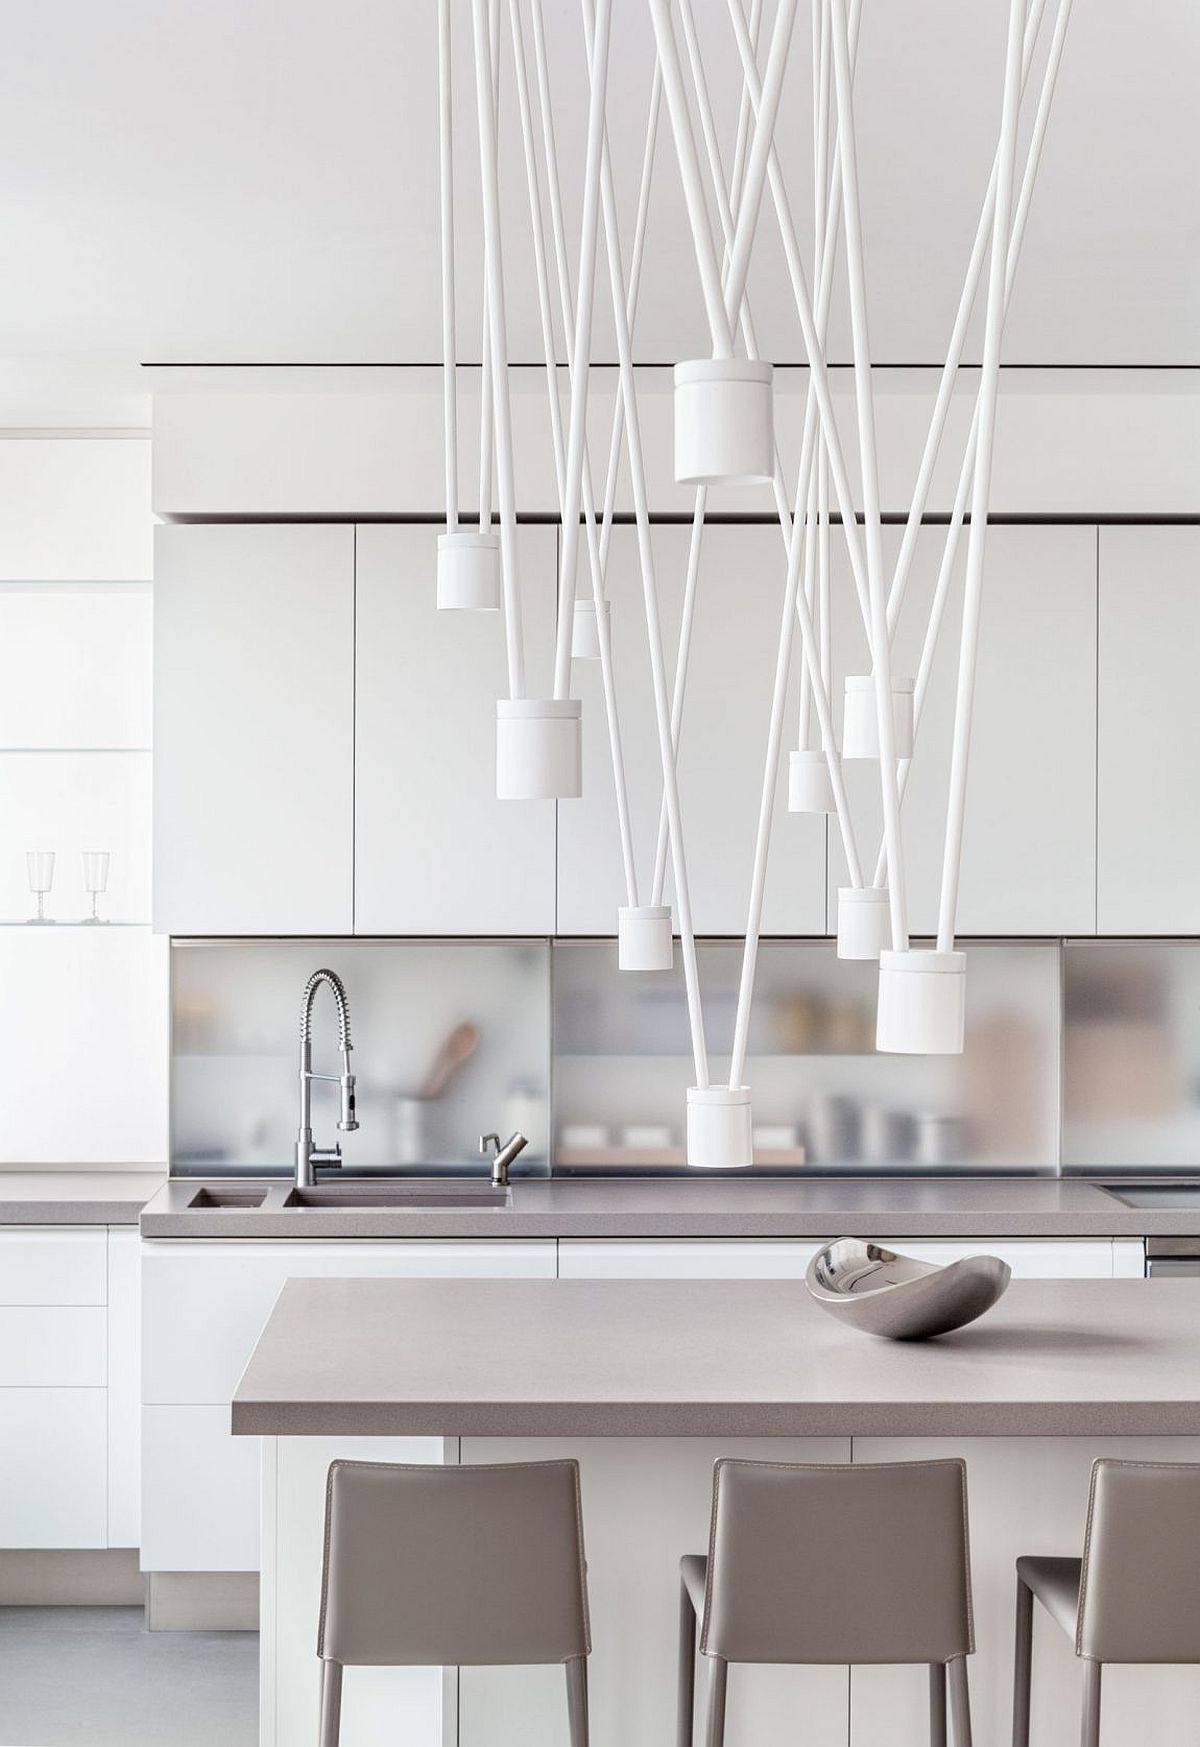 Bespoke lighting fixture above the dining space adds intrigue